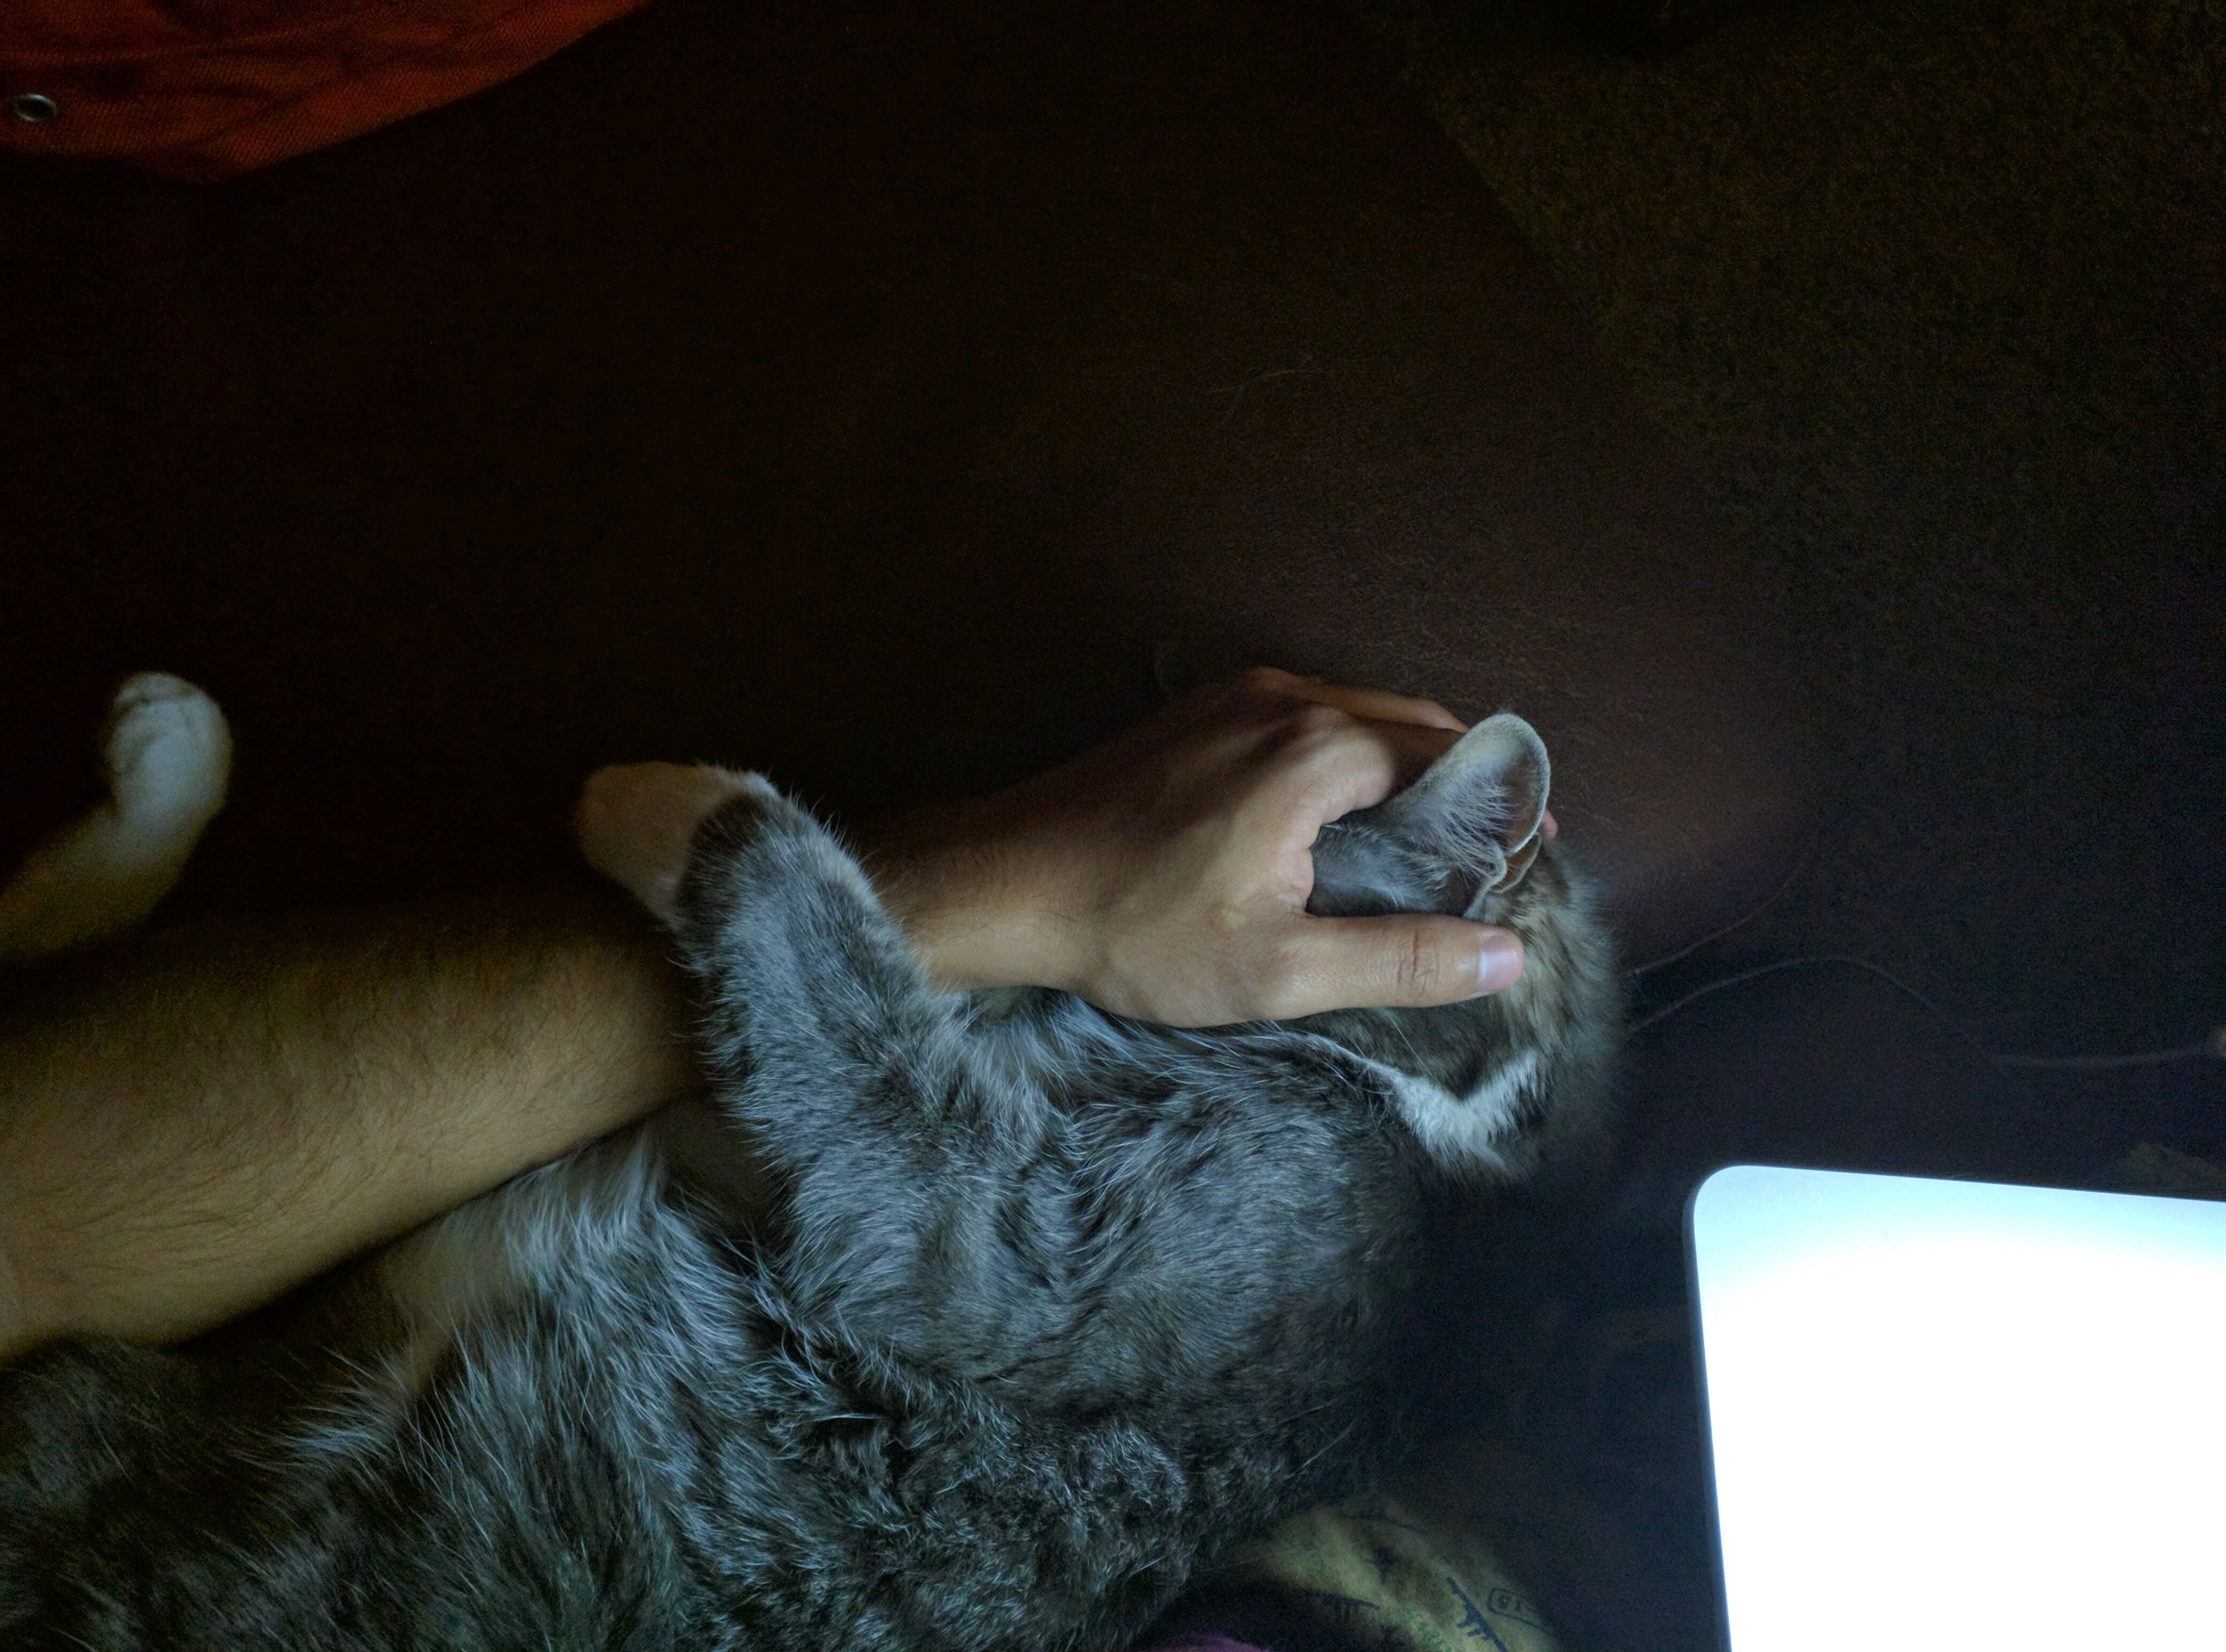 Pippin got into the habit of sleeping like this when he was a kitten; also he won't leave my side when I am working late into the night.